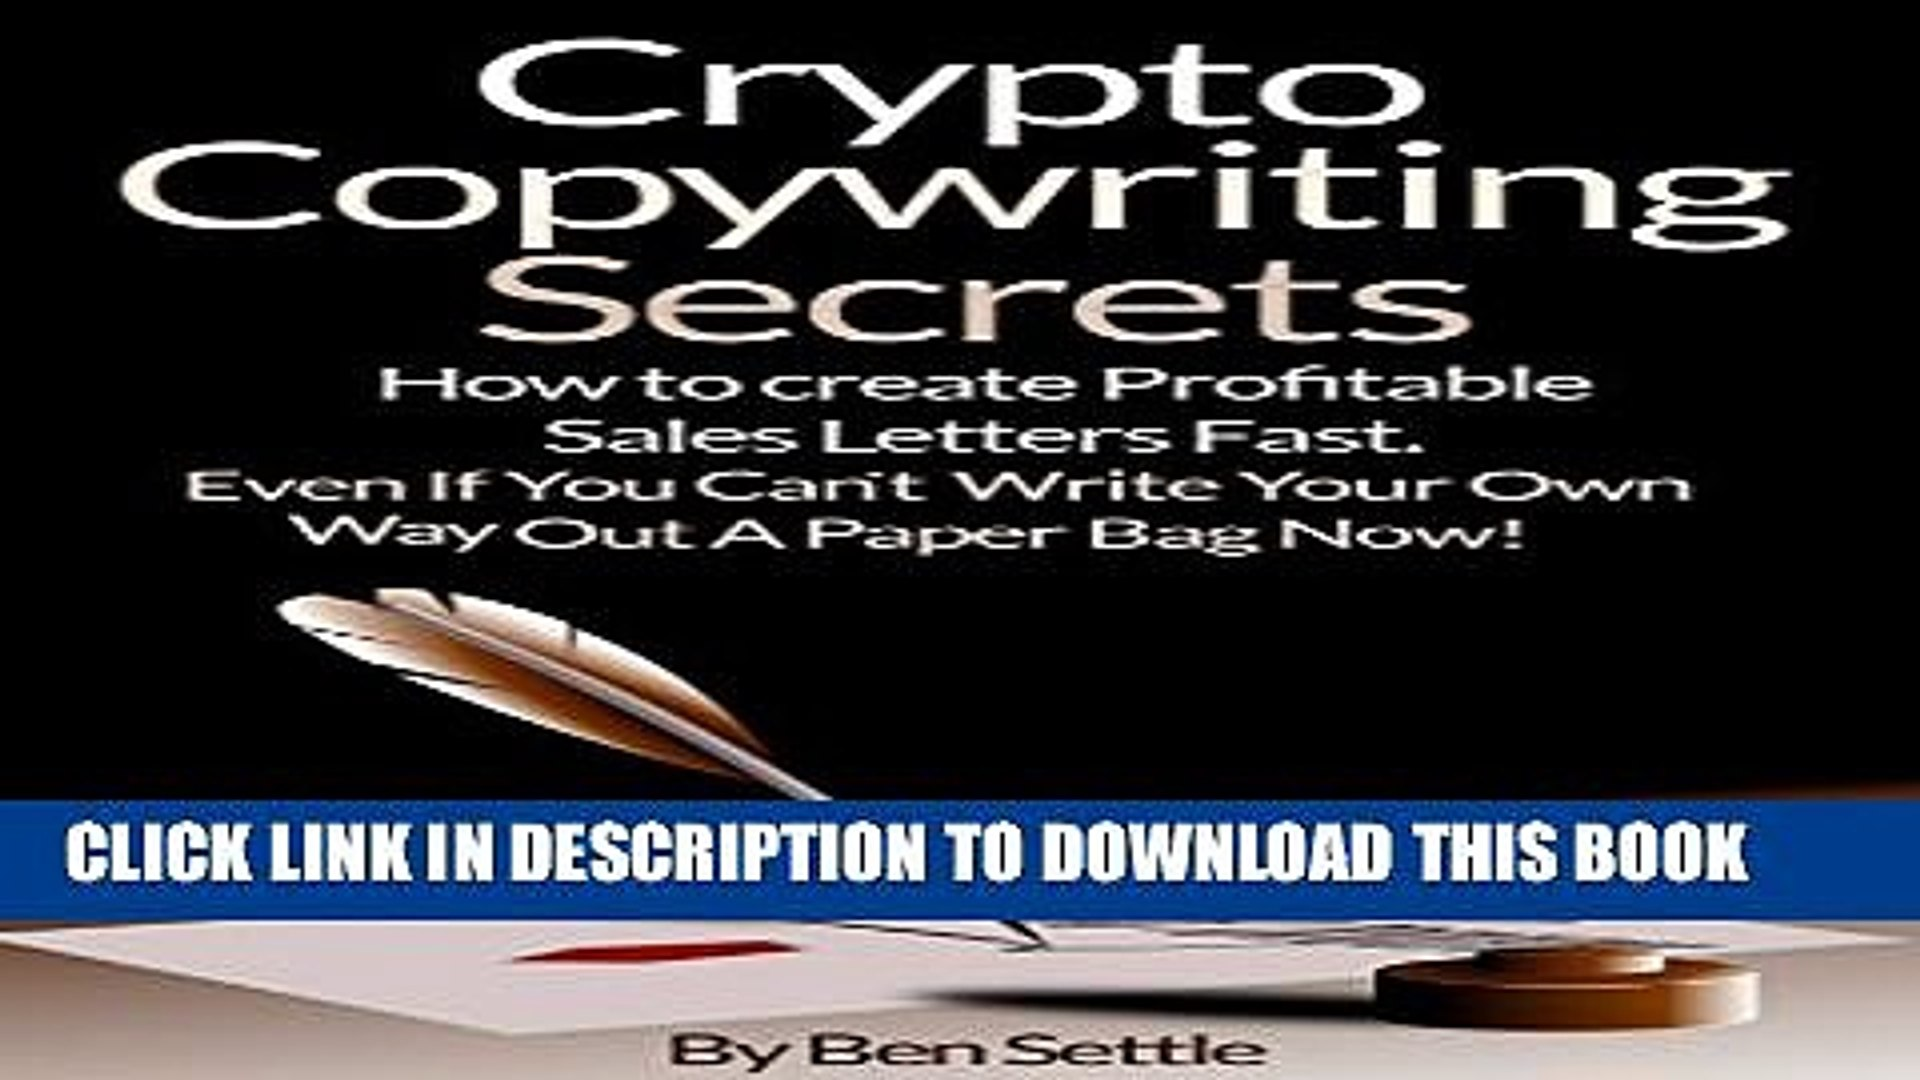 [PDF] Crypto Copywriting Secrets - How to create profitable sales letters fast - even if you can t